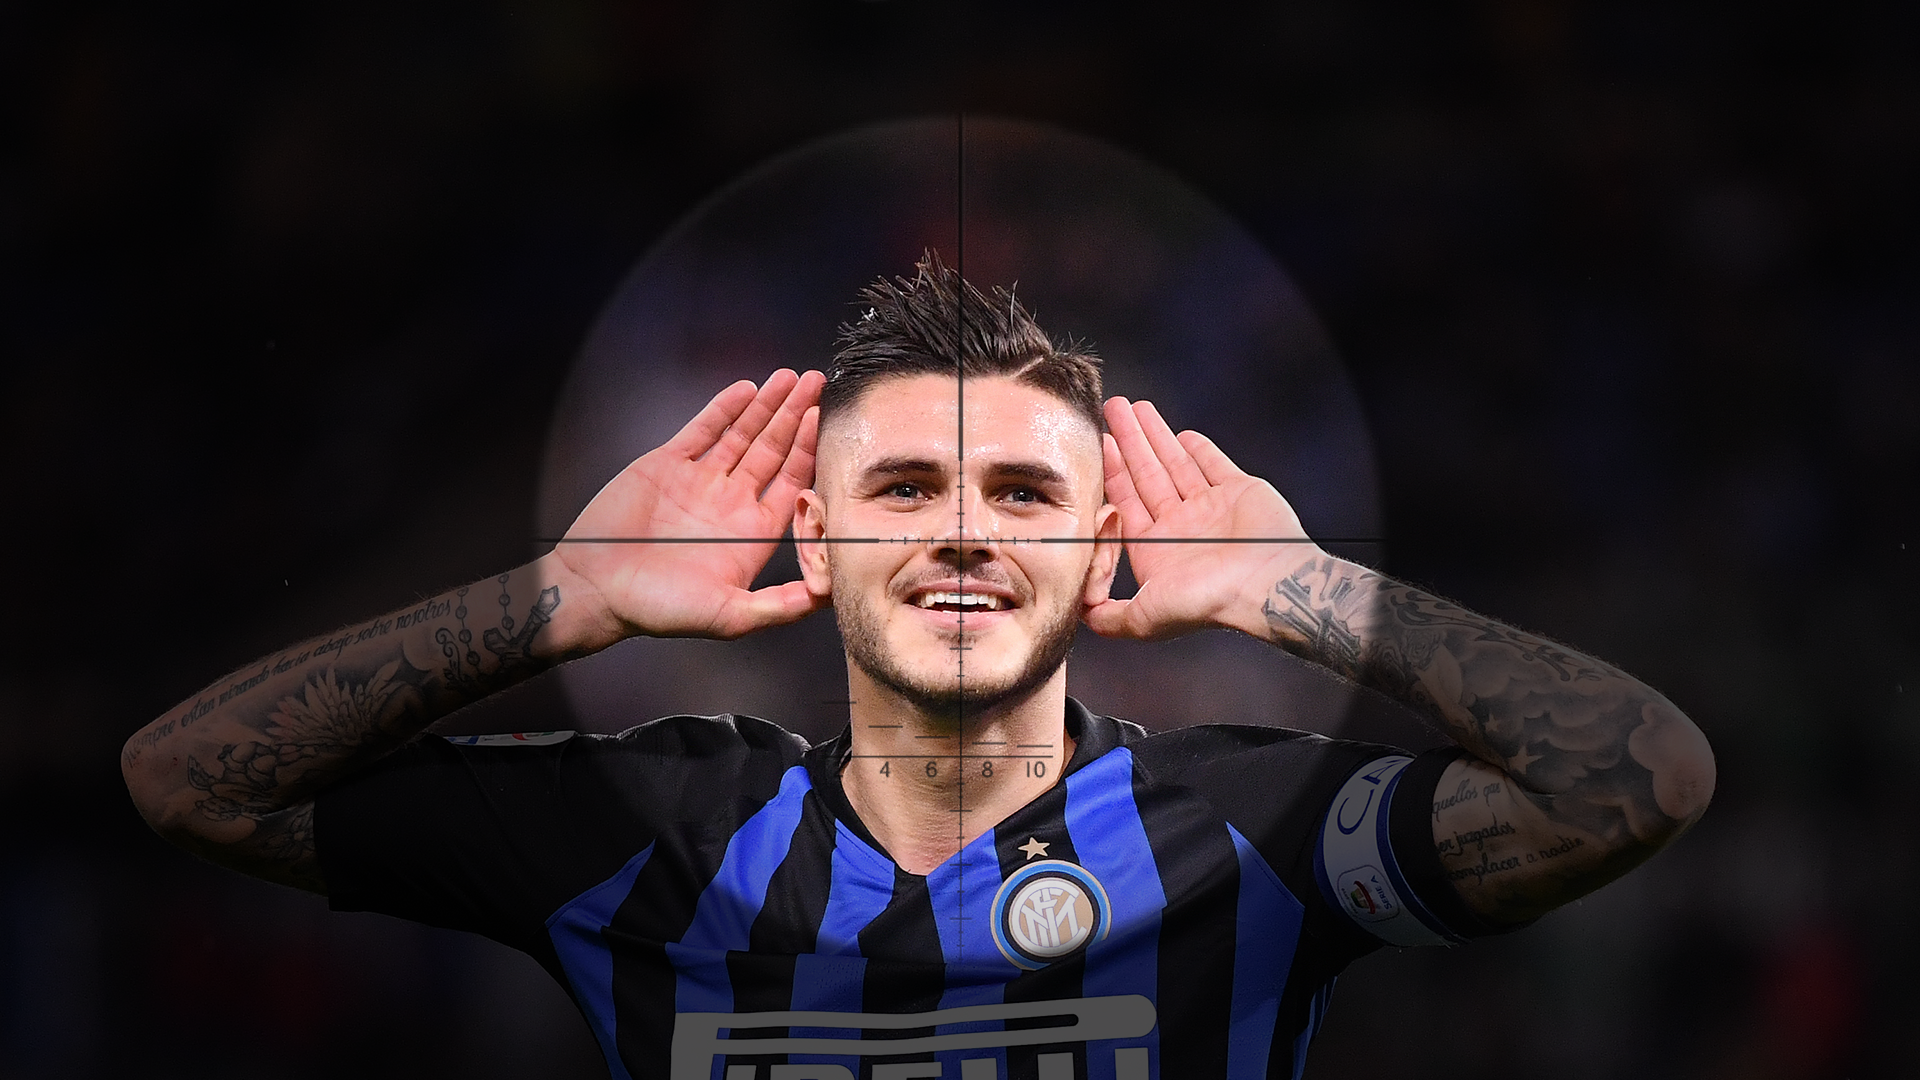 039;Assassin&#039 Mauro Icardi